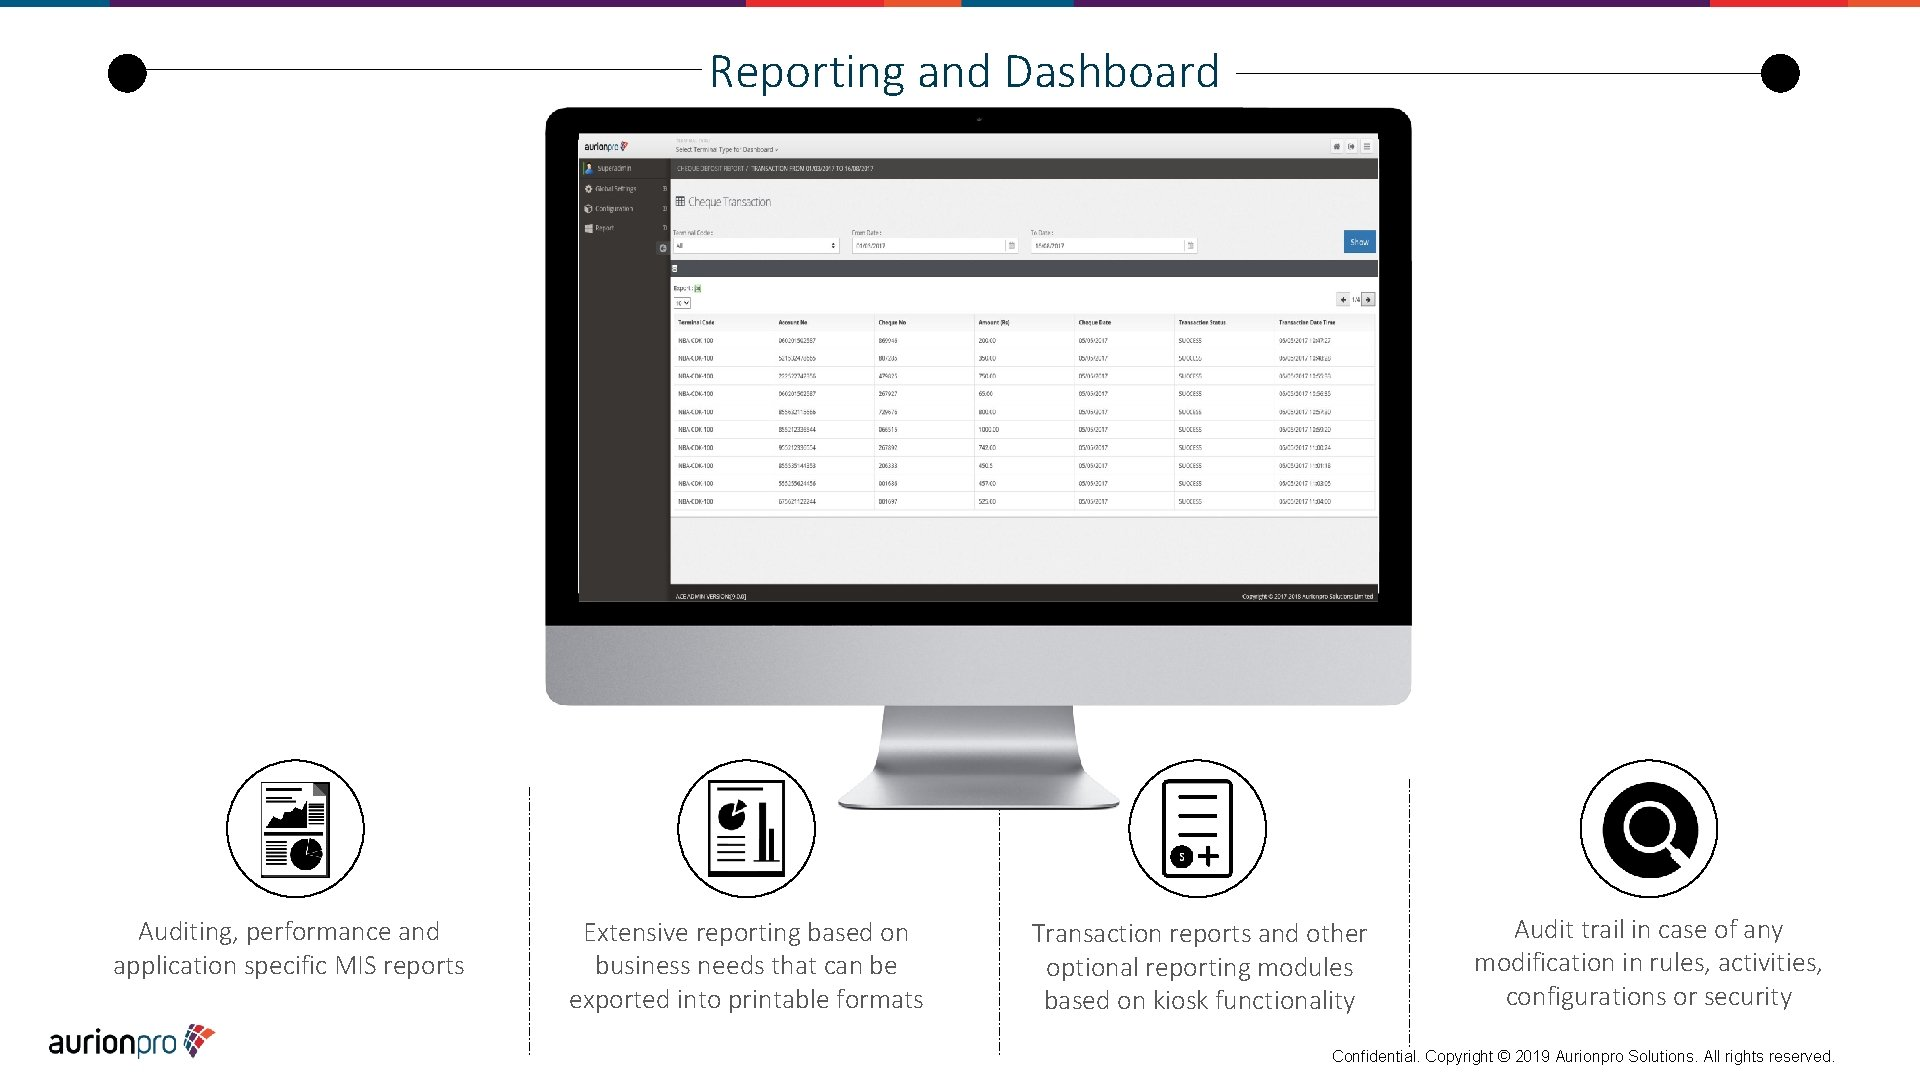 Reporting and Dashboard Auditing, performance and application specific MIS reports Extensive reporting based on